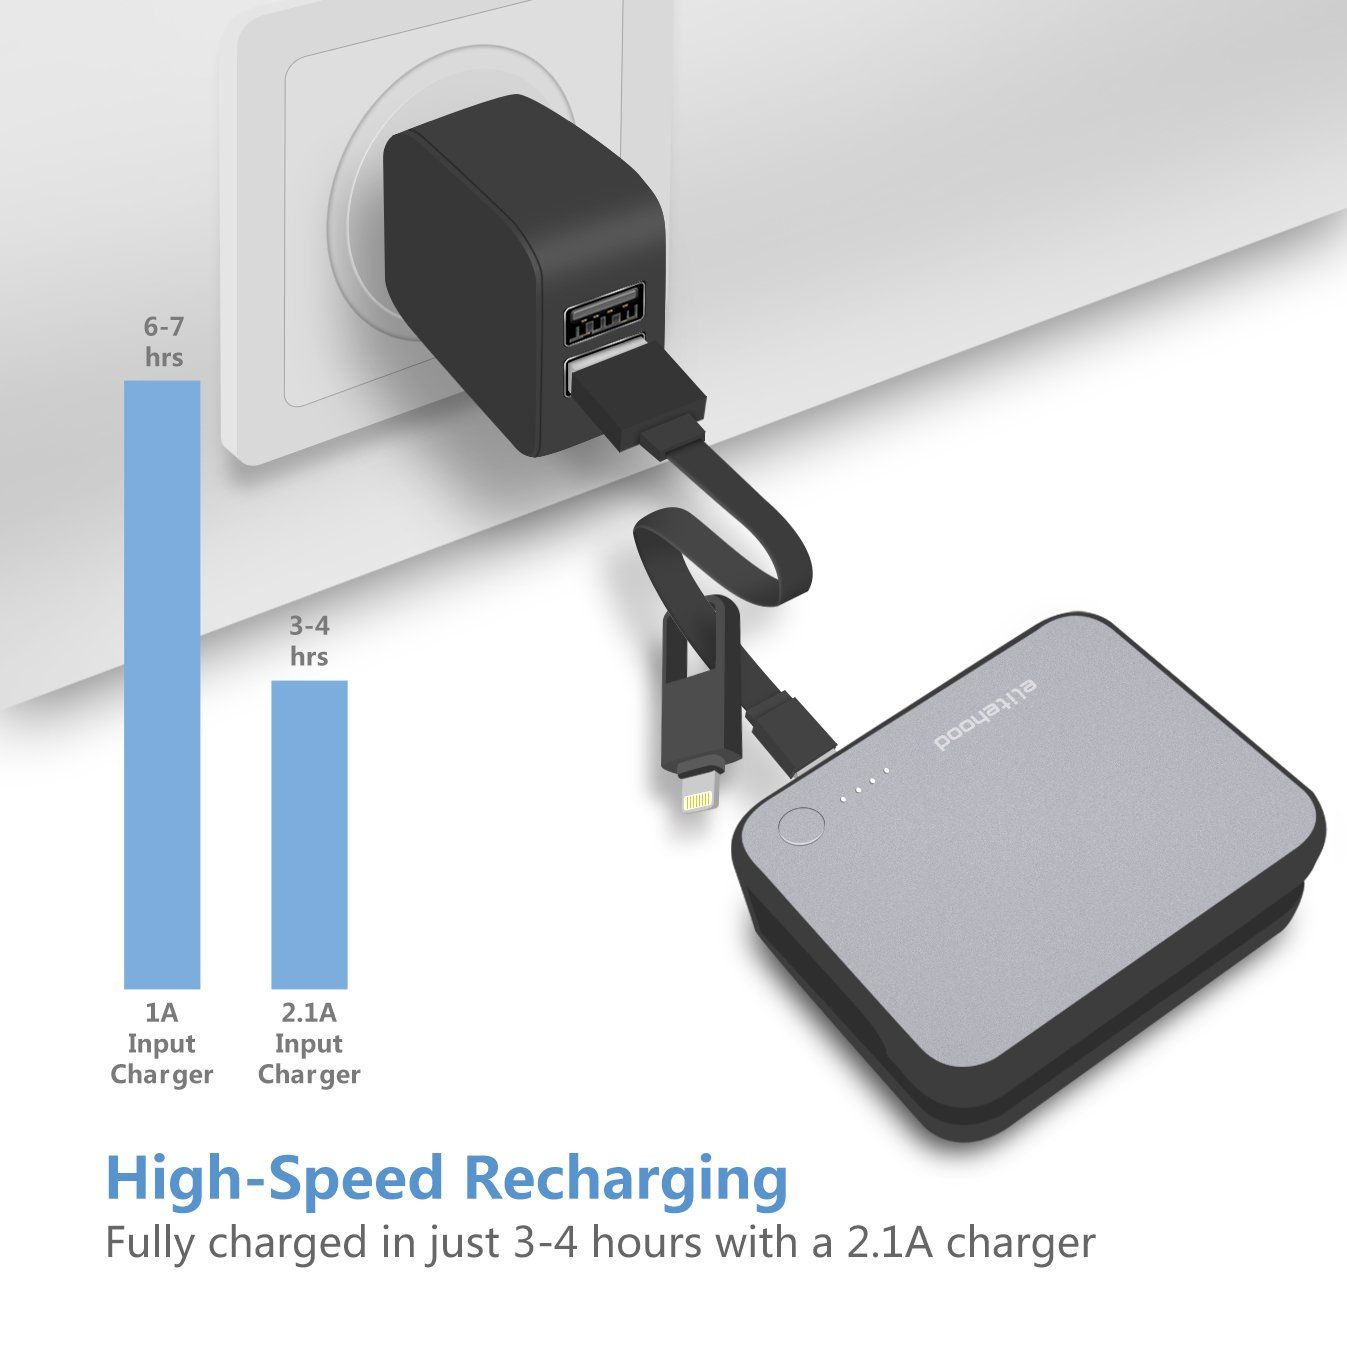 Elitehood Portable Power Bank Apple Mfi Certified 6000mah Charger With Cable Management 2port High Speed Ex With Images Powerbank Portable Power Bank External Battery Pack